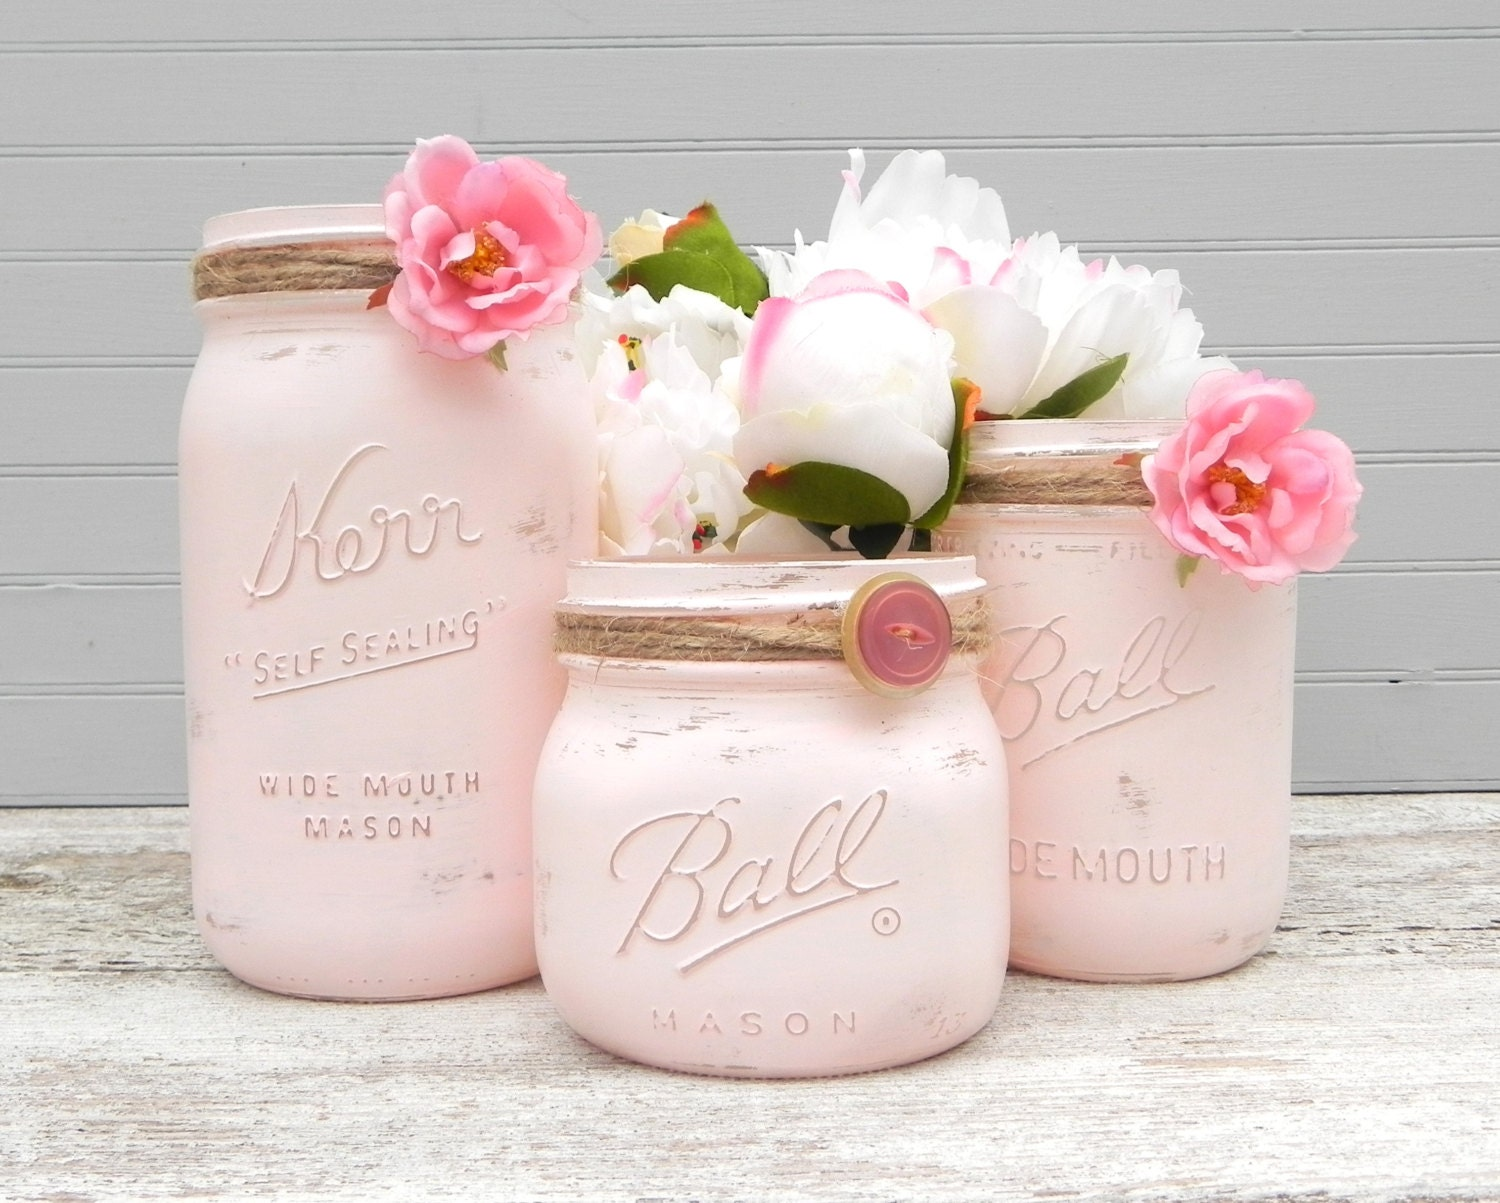 Shabby Chic Pink Mason Jars, Painted Mason Jars, Mason Jar Vases, Jars for Gifts, Weddings, Showers, Decor - GlassCastle2